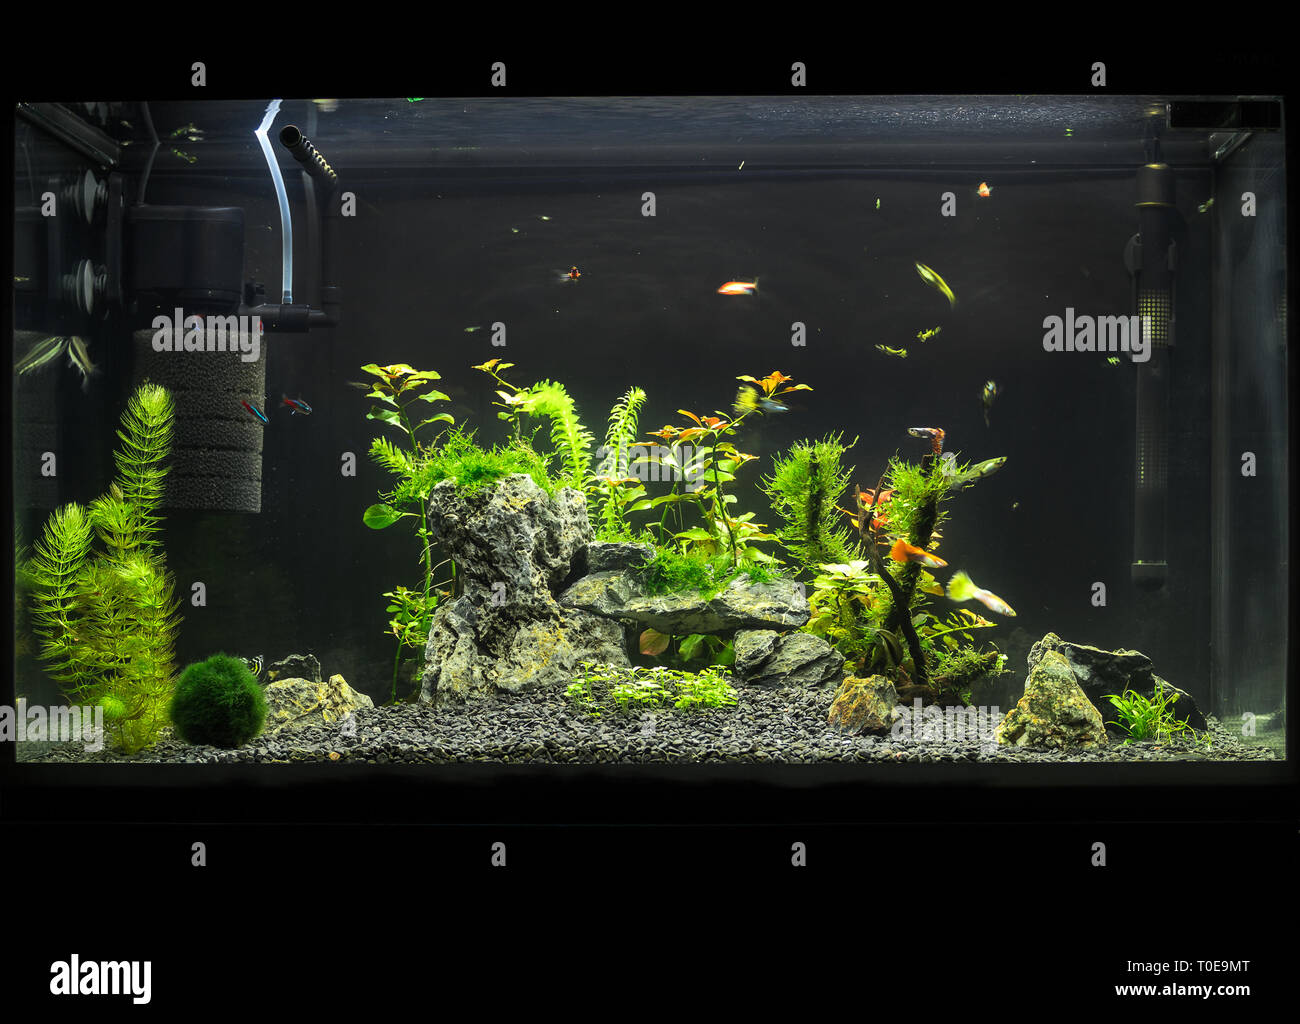 Aquascape High Resolution Stock Photography And Images Alamy